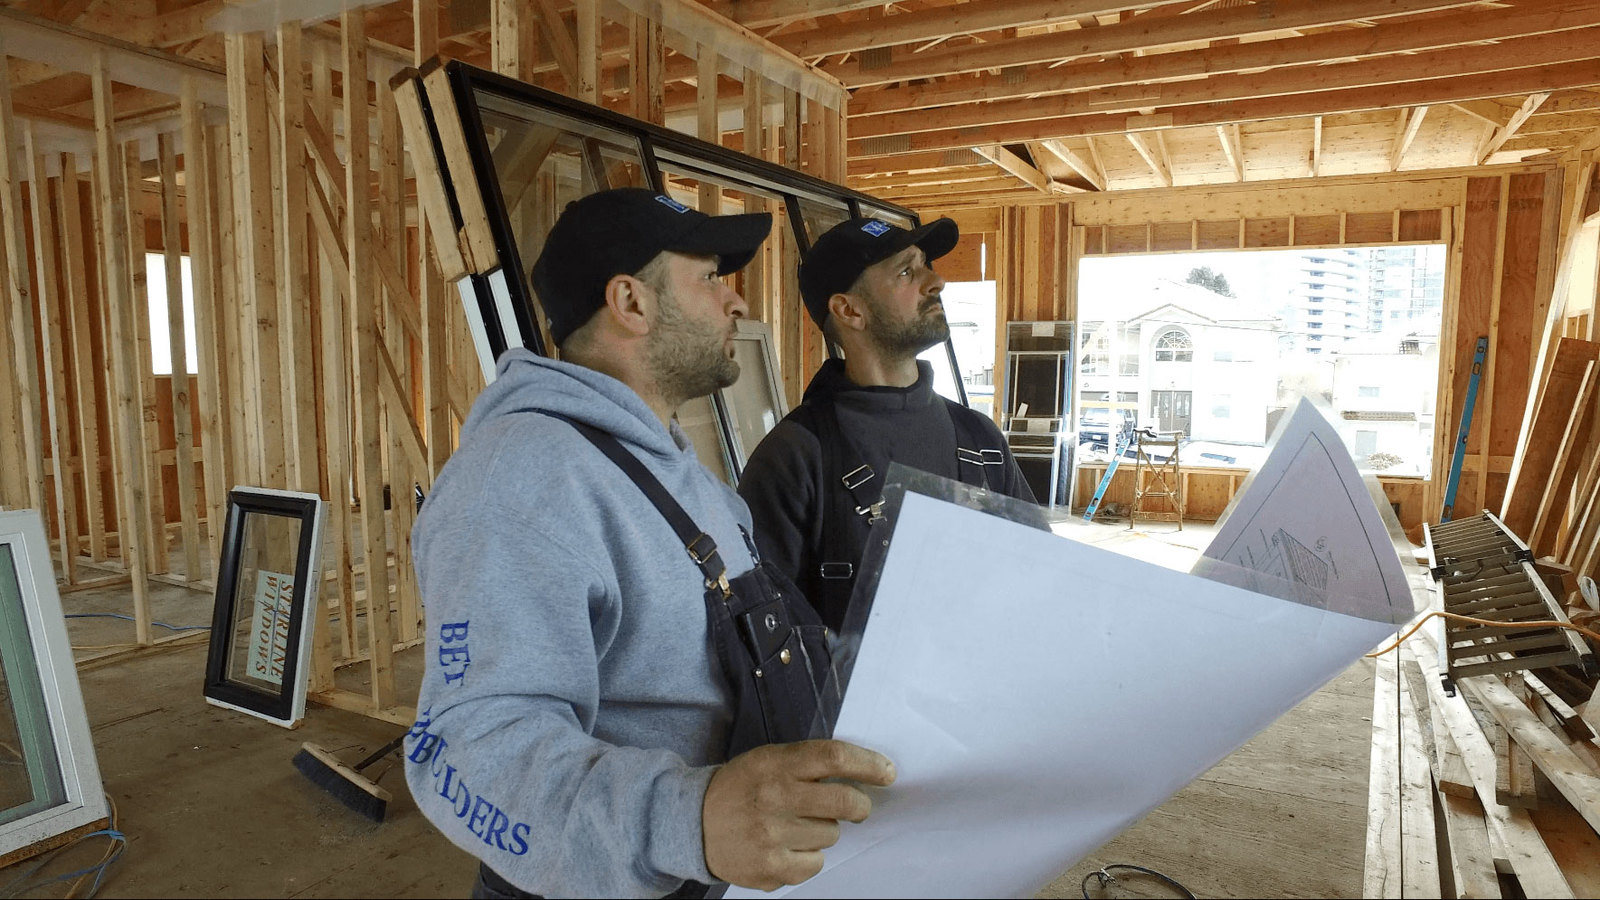 Two construction workers examine the plans of a construction site